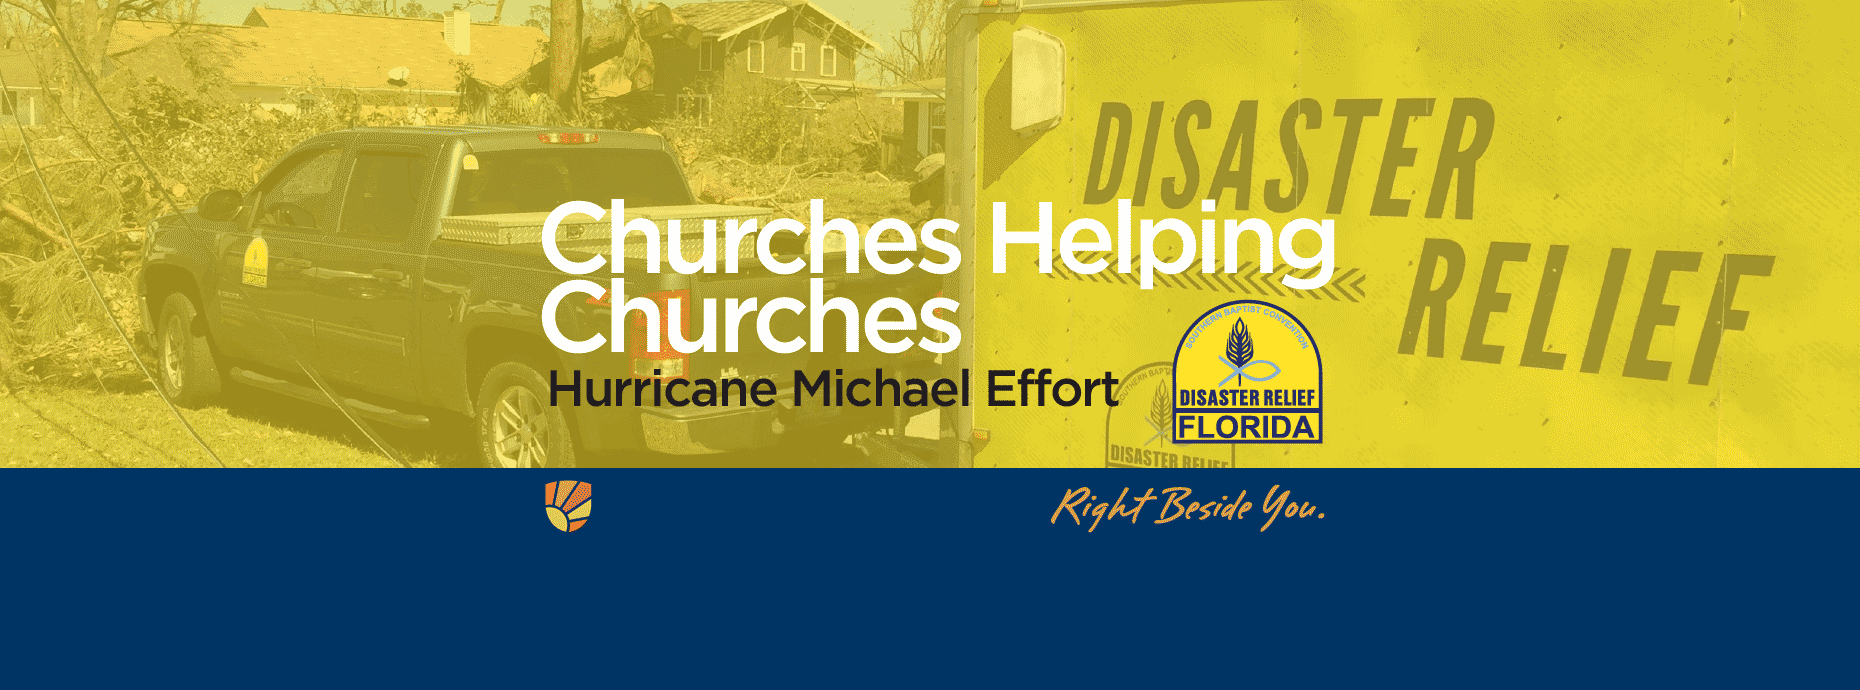 Florida Baptist Convention, Churches Helping Churches, Hurricane Michael, Disaster Relief,